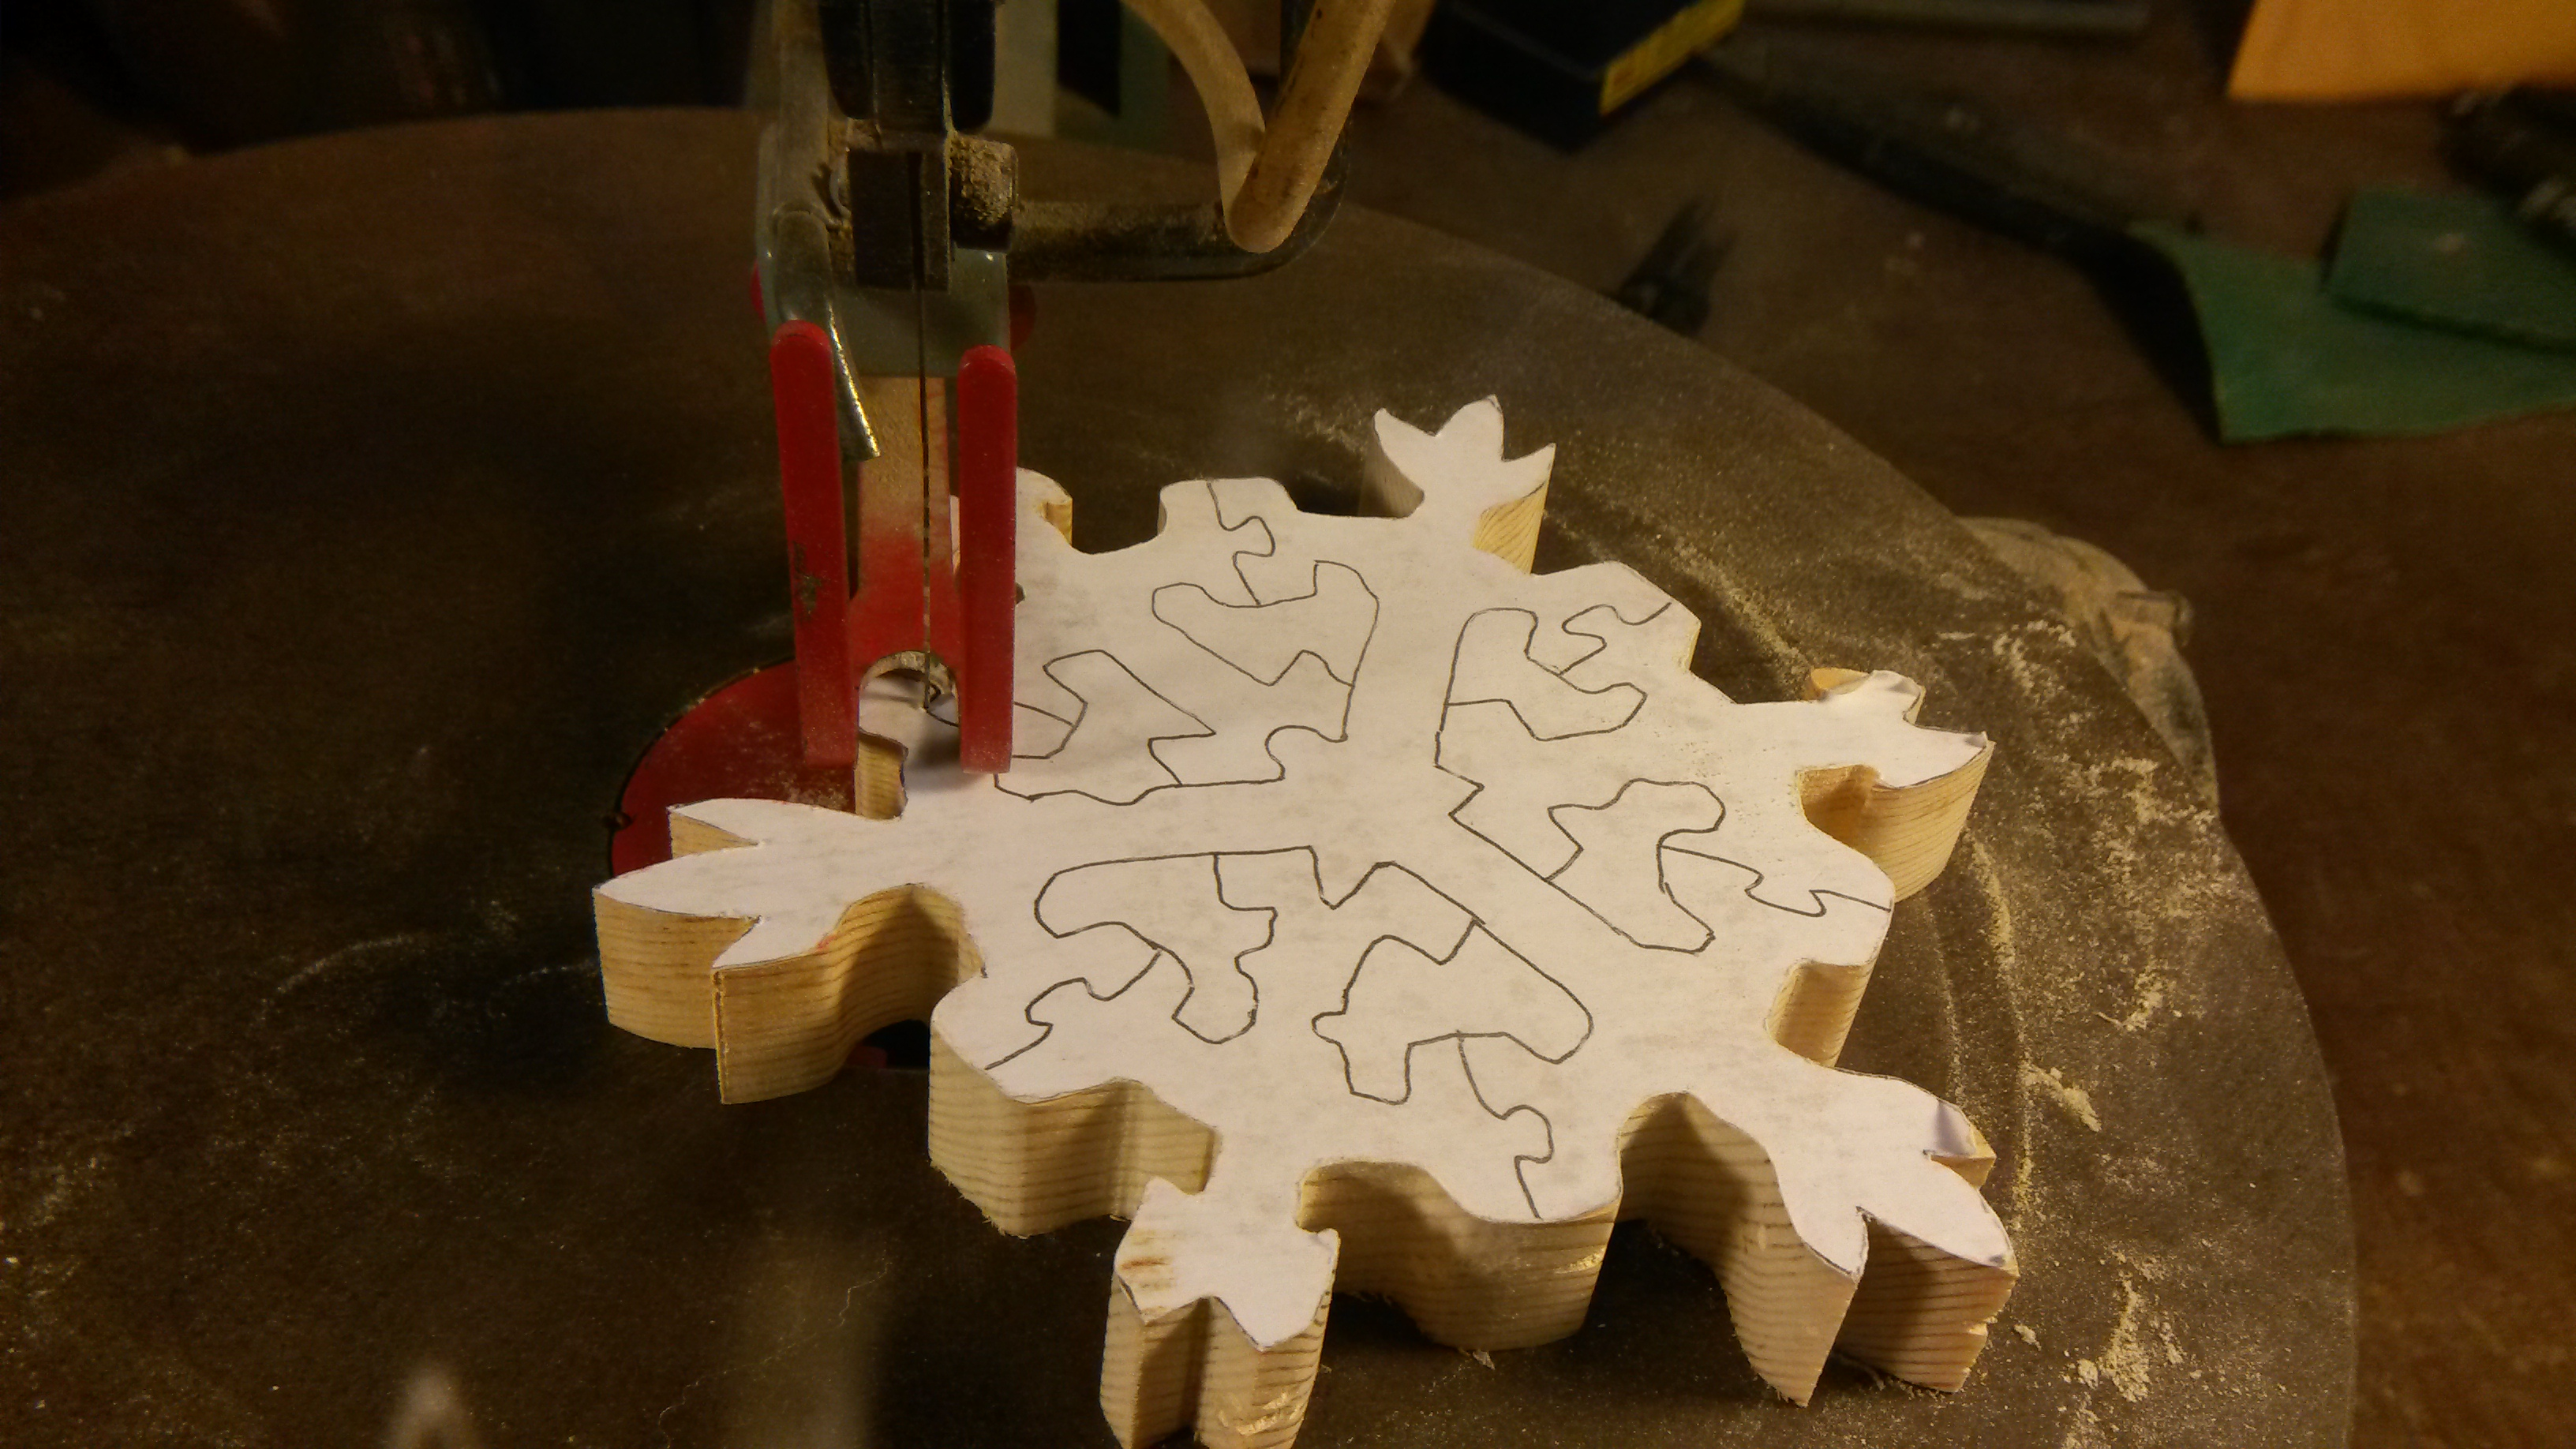 Picture of Cut Out the Puzzle Pieces